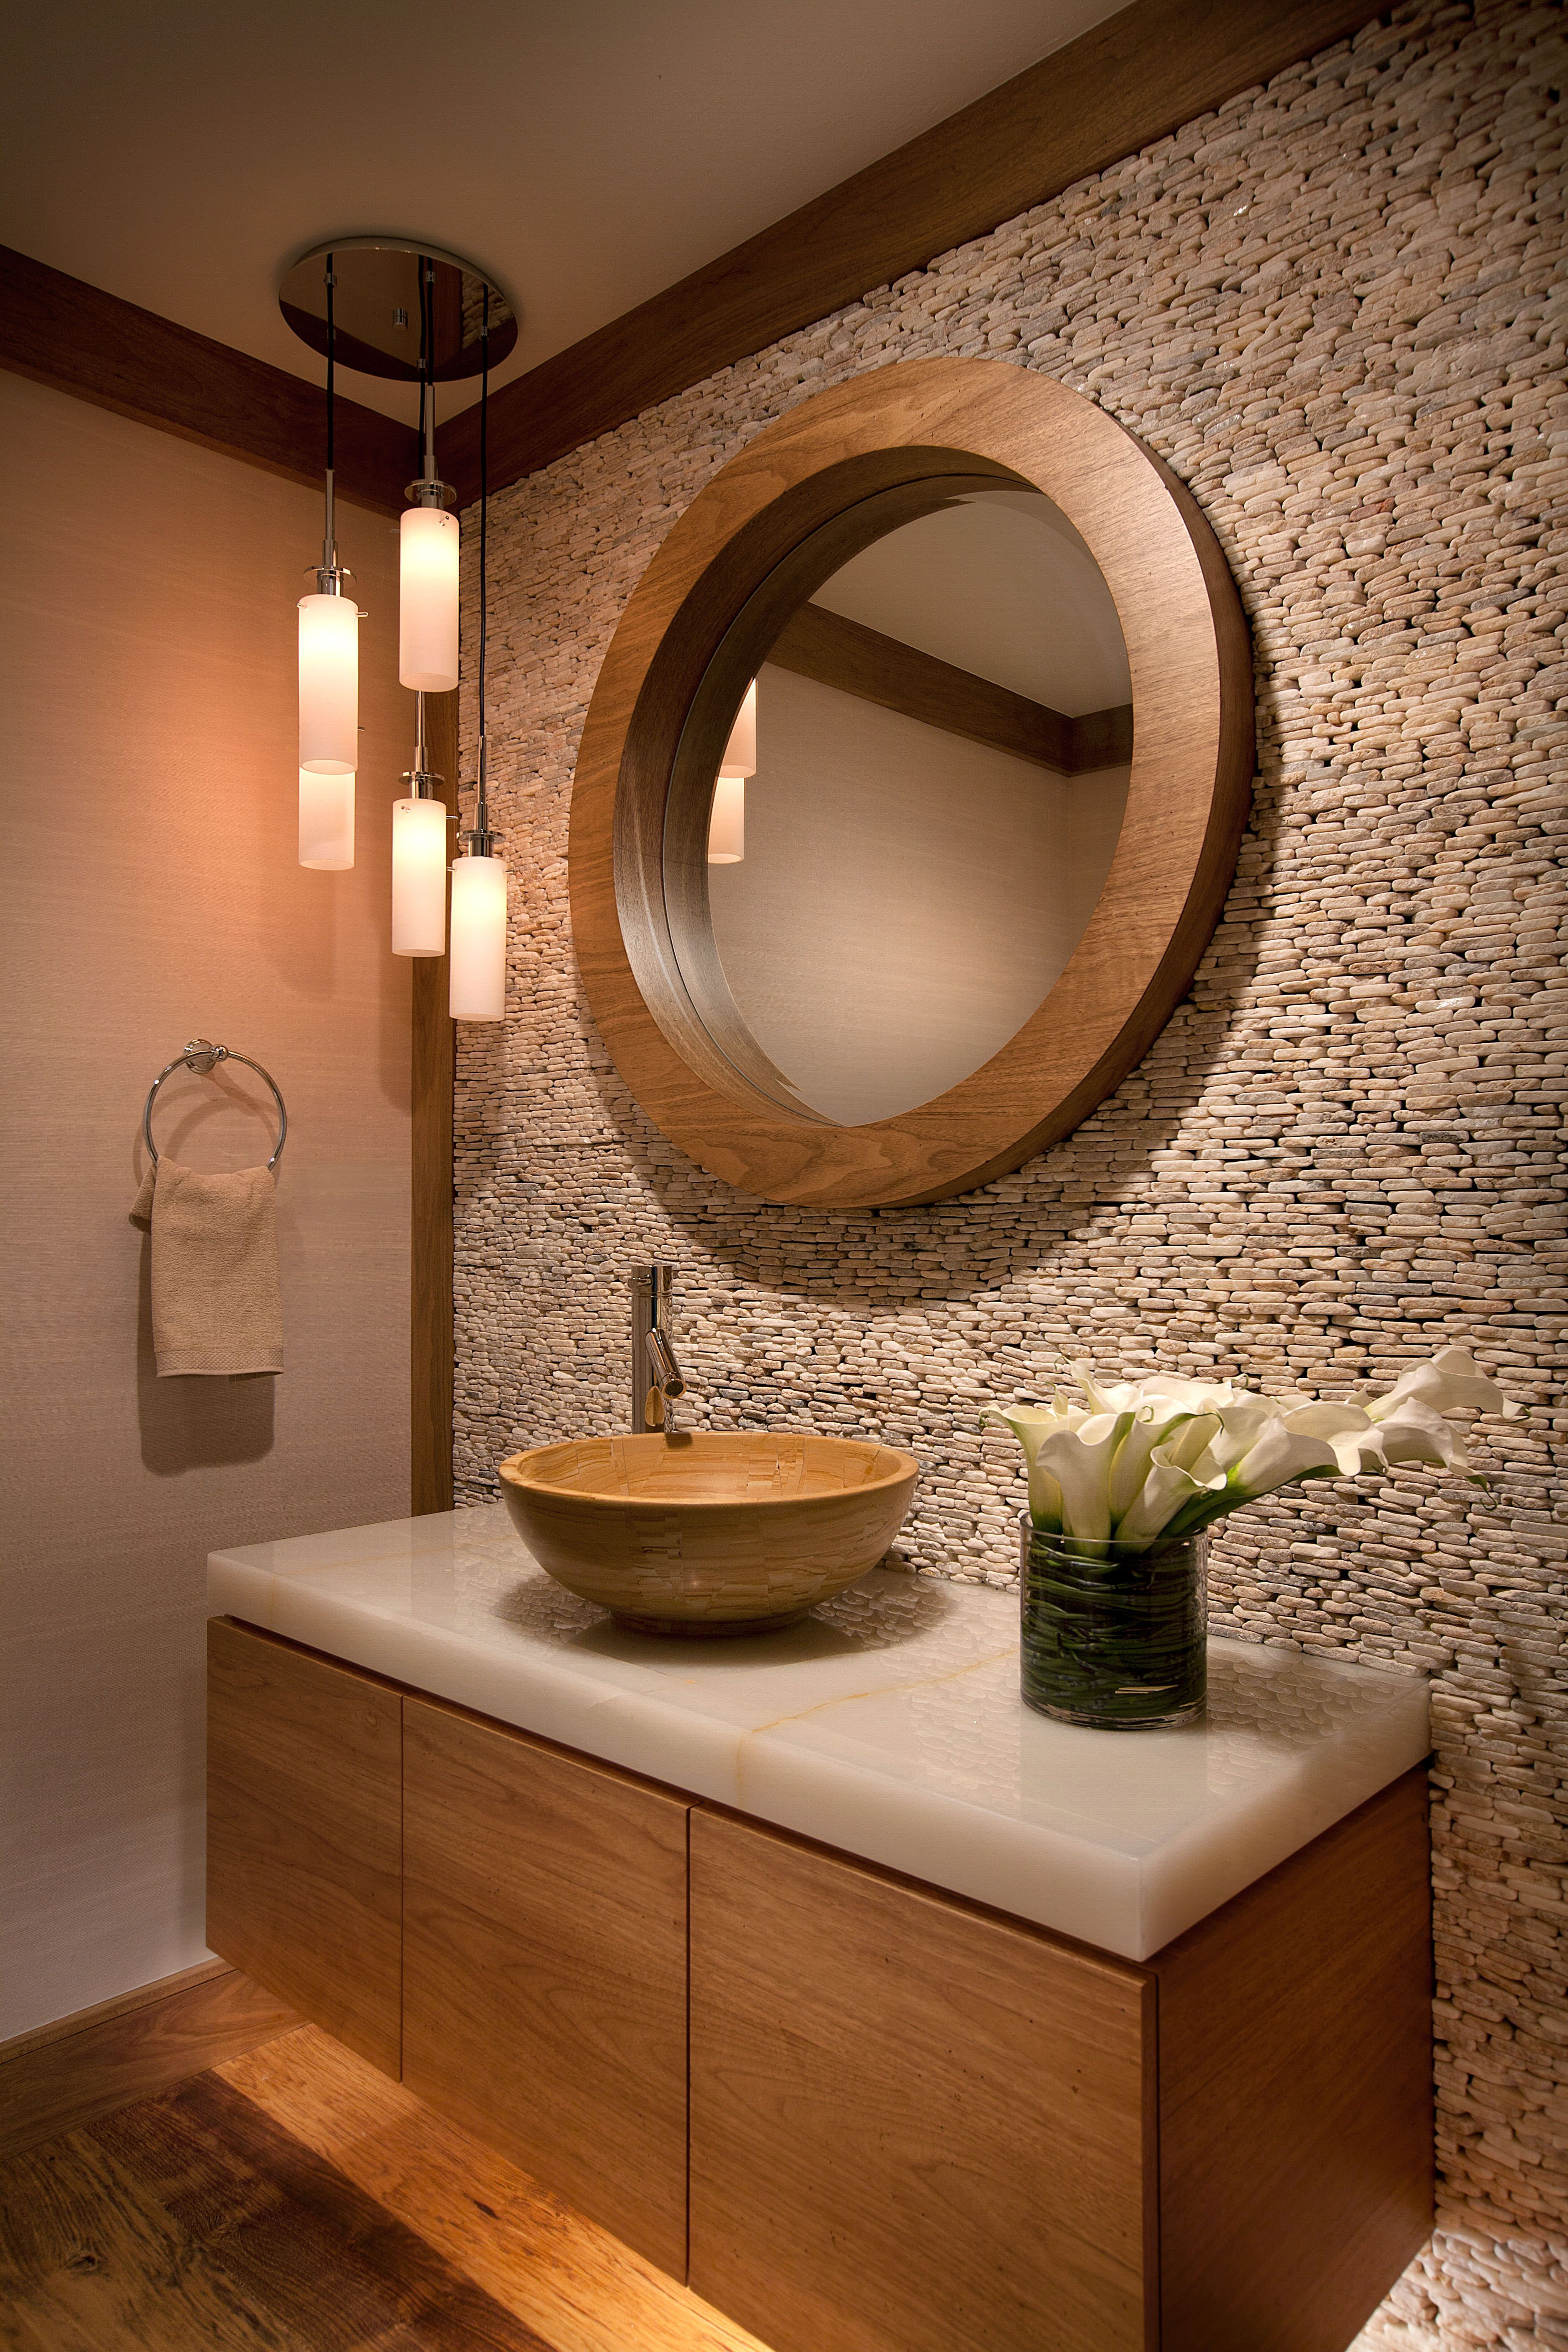 Lavabo Dise Os Ba Os Toilettes Pinterest Earth Spaces And